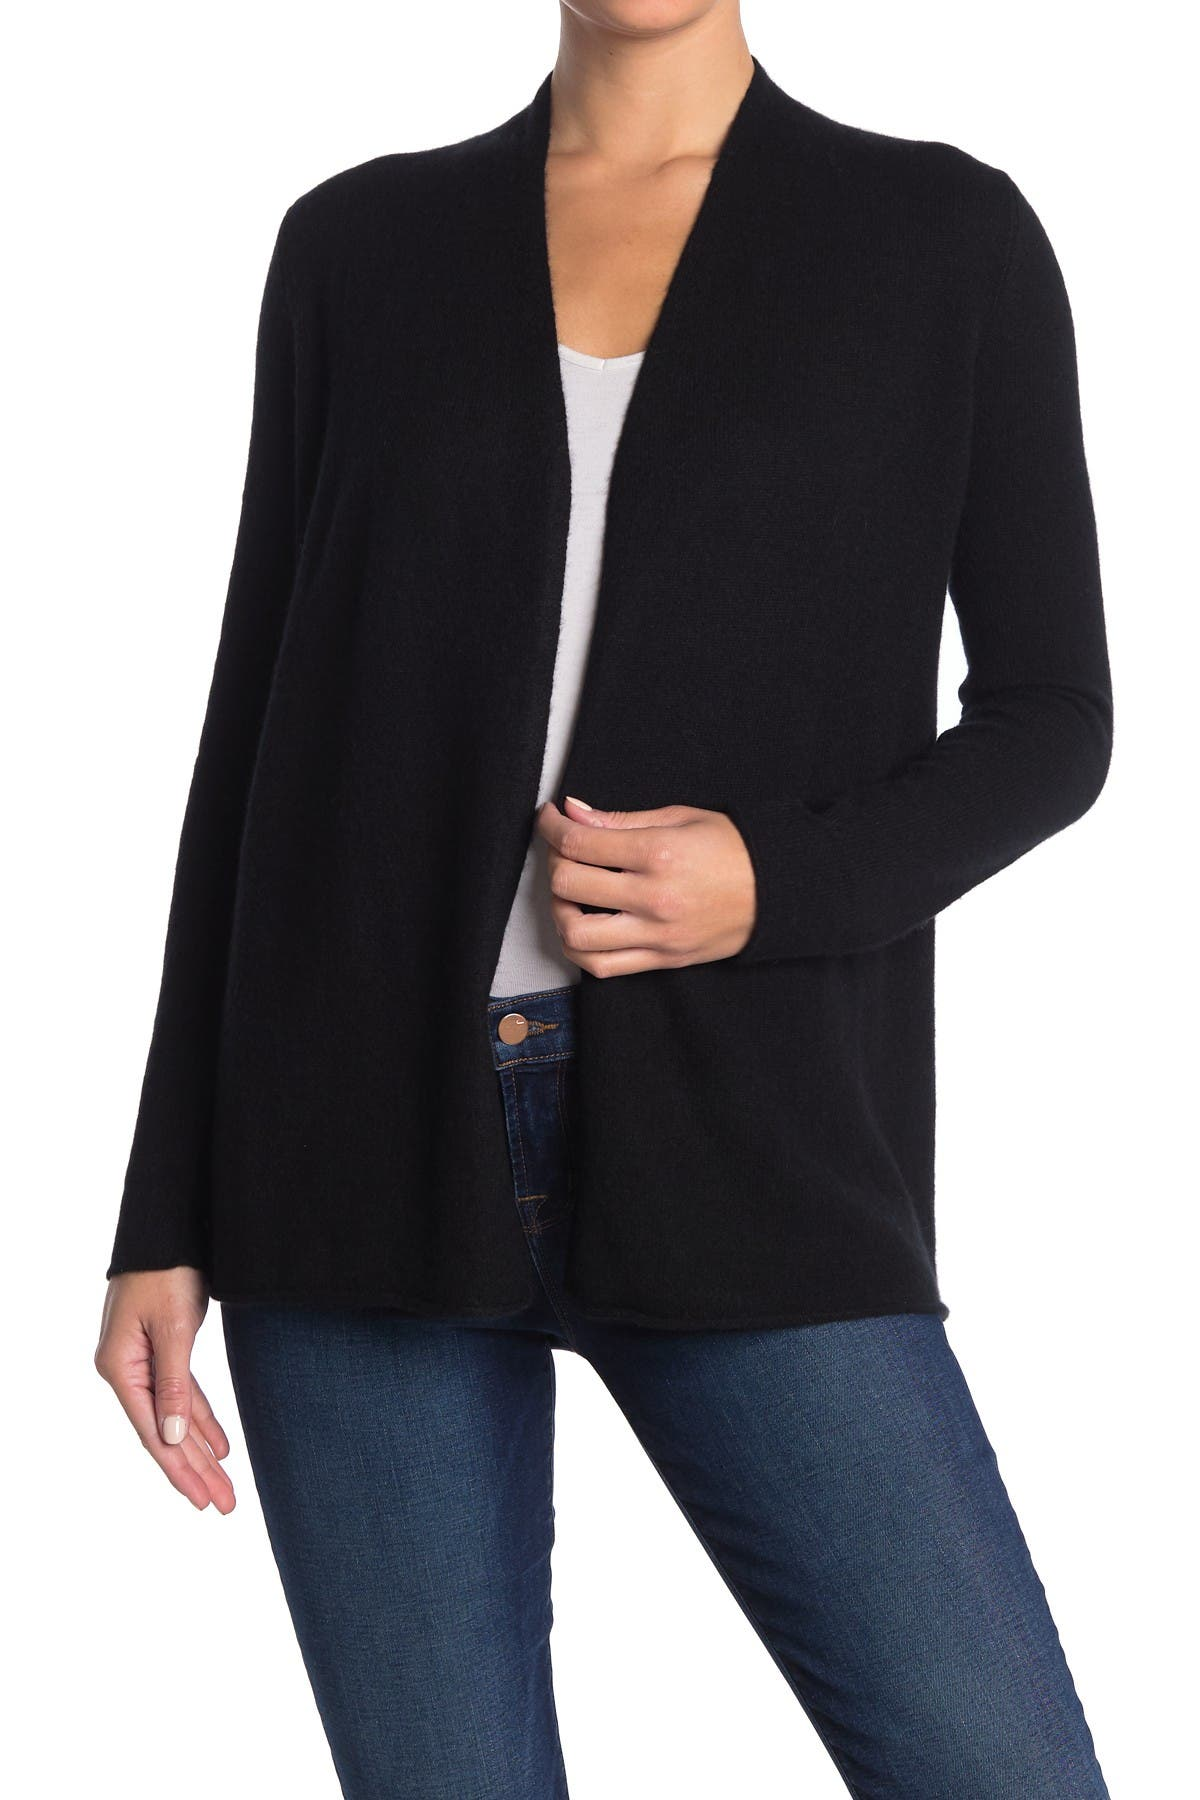 Image of GRIFFEN CASHMERE Cashmere Cardigan